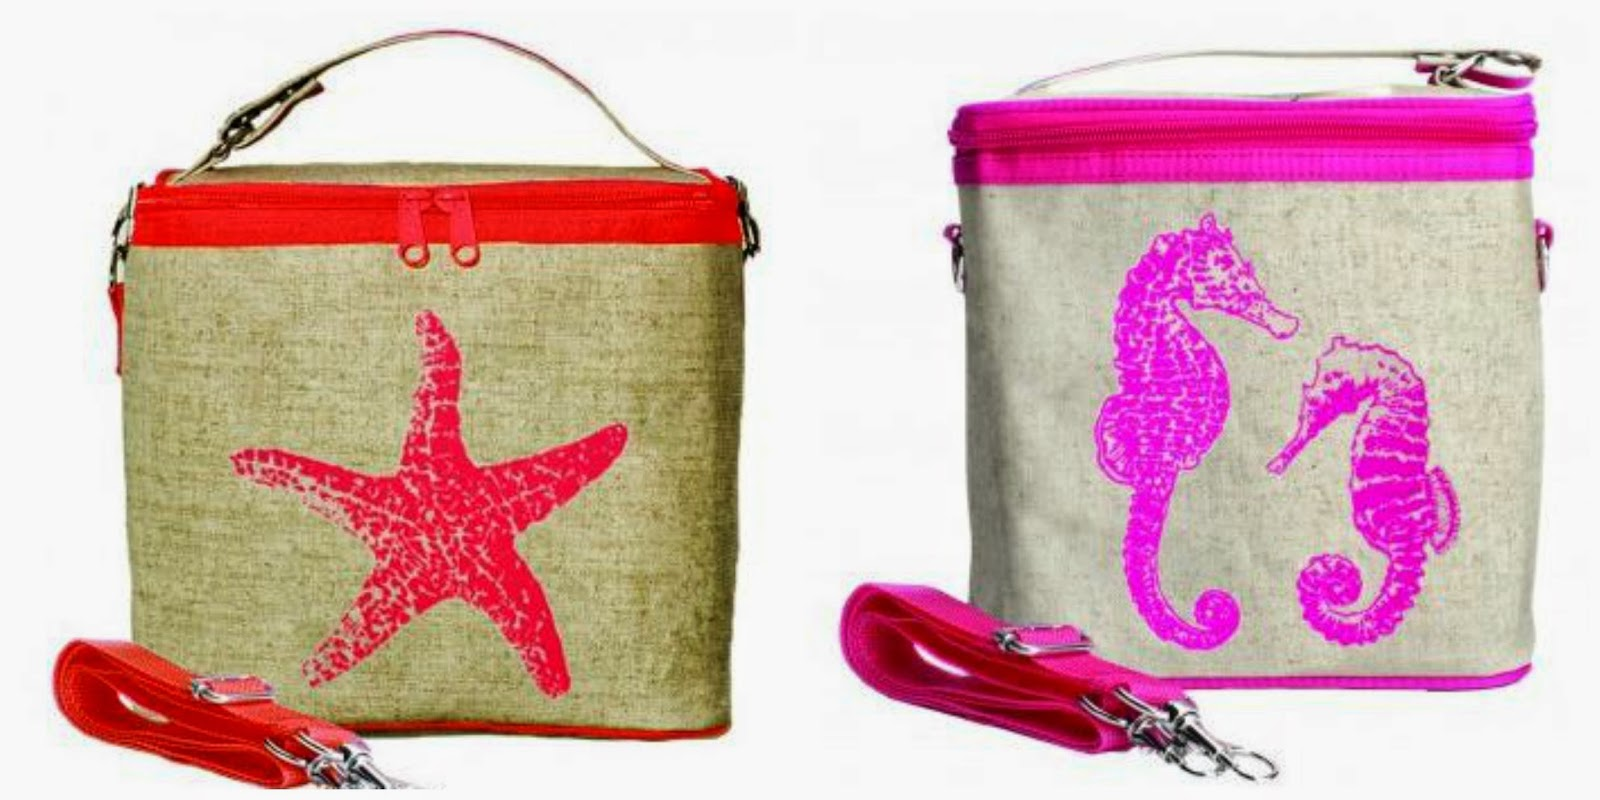 Top Nautical by Nature: SoYoung Nautical lunch boxes and cooler bags IX31